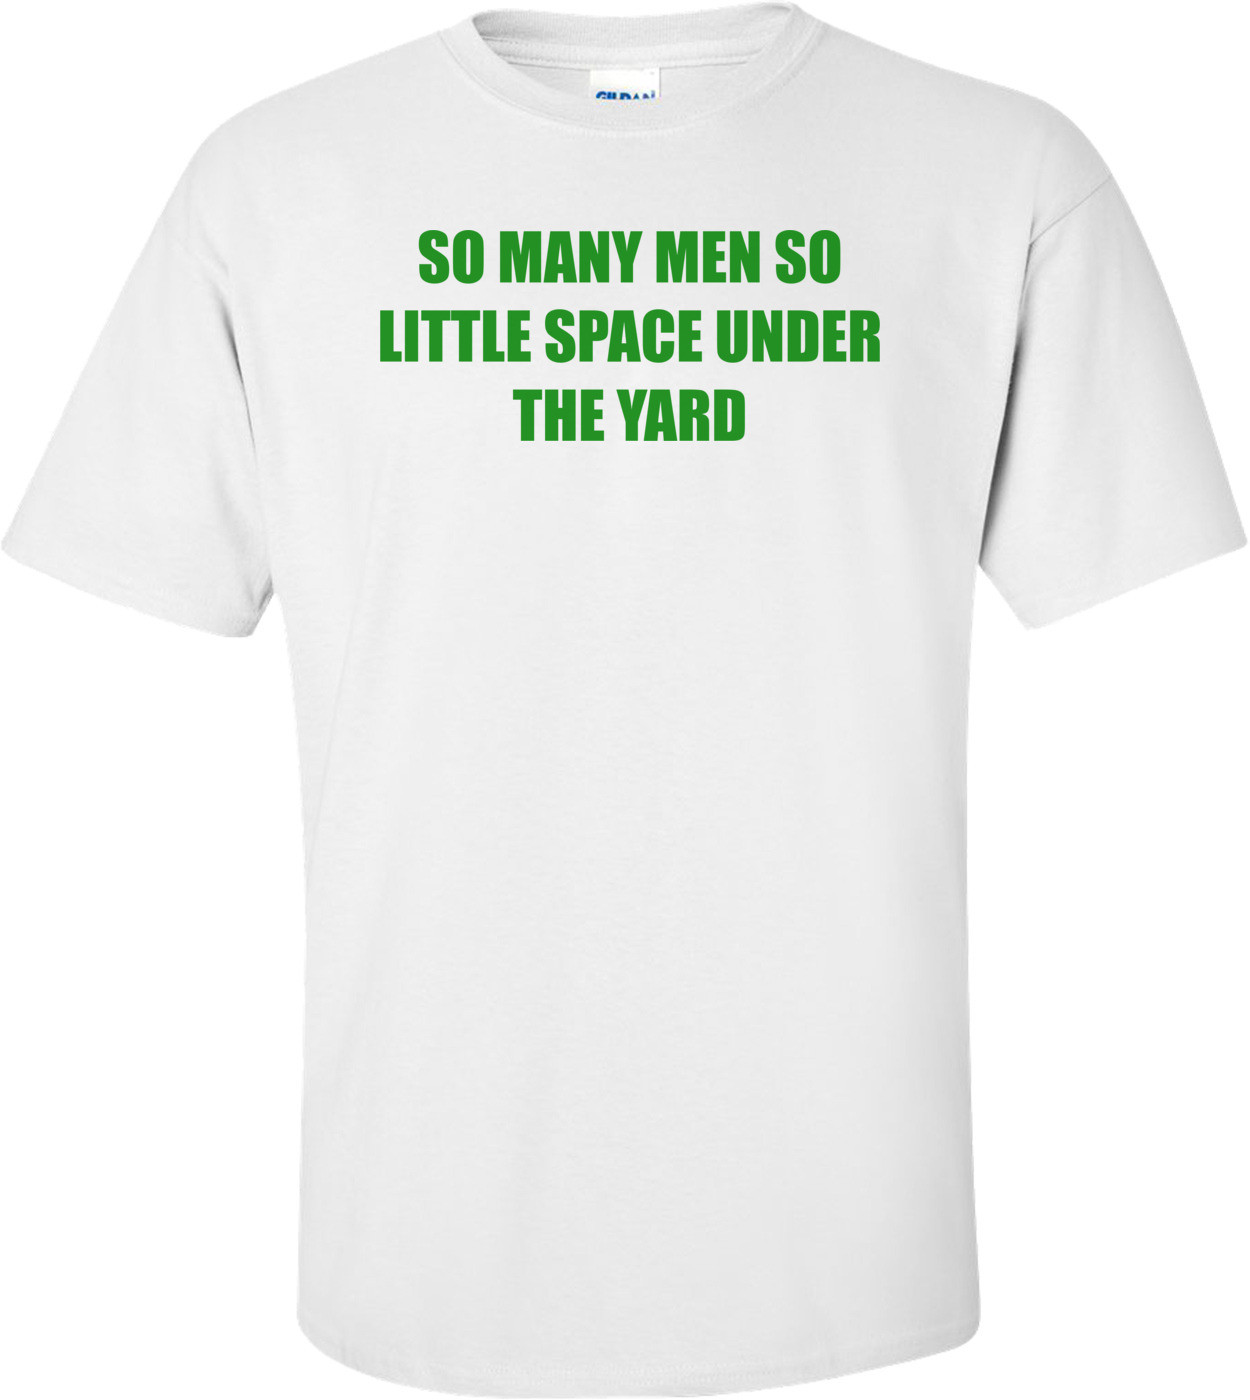 So Many Men So Little Space Under The Yard Shirt